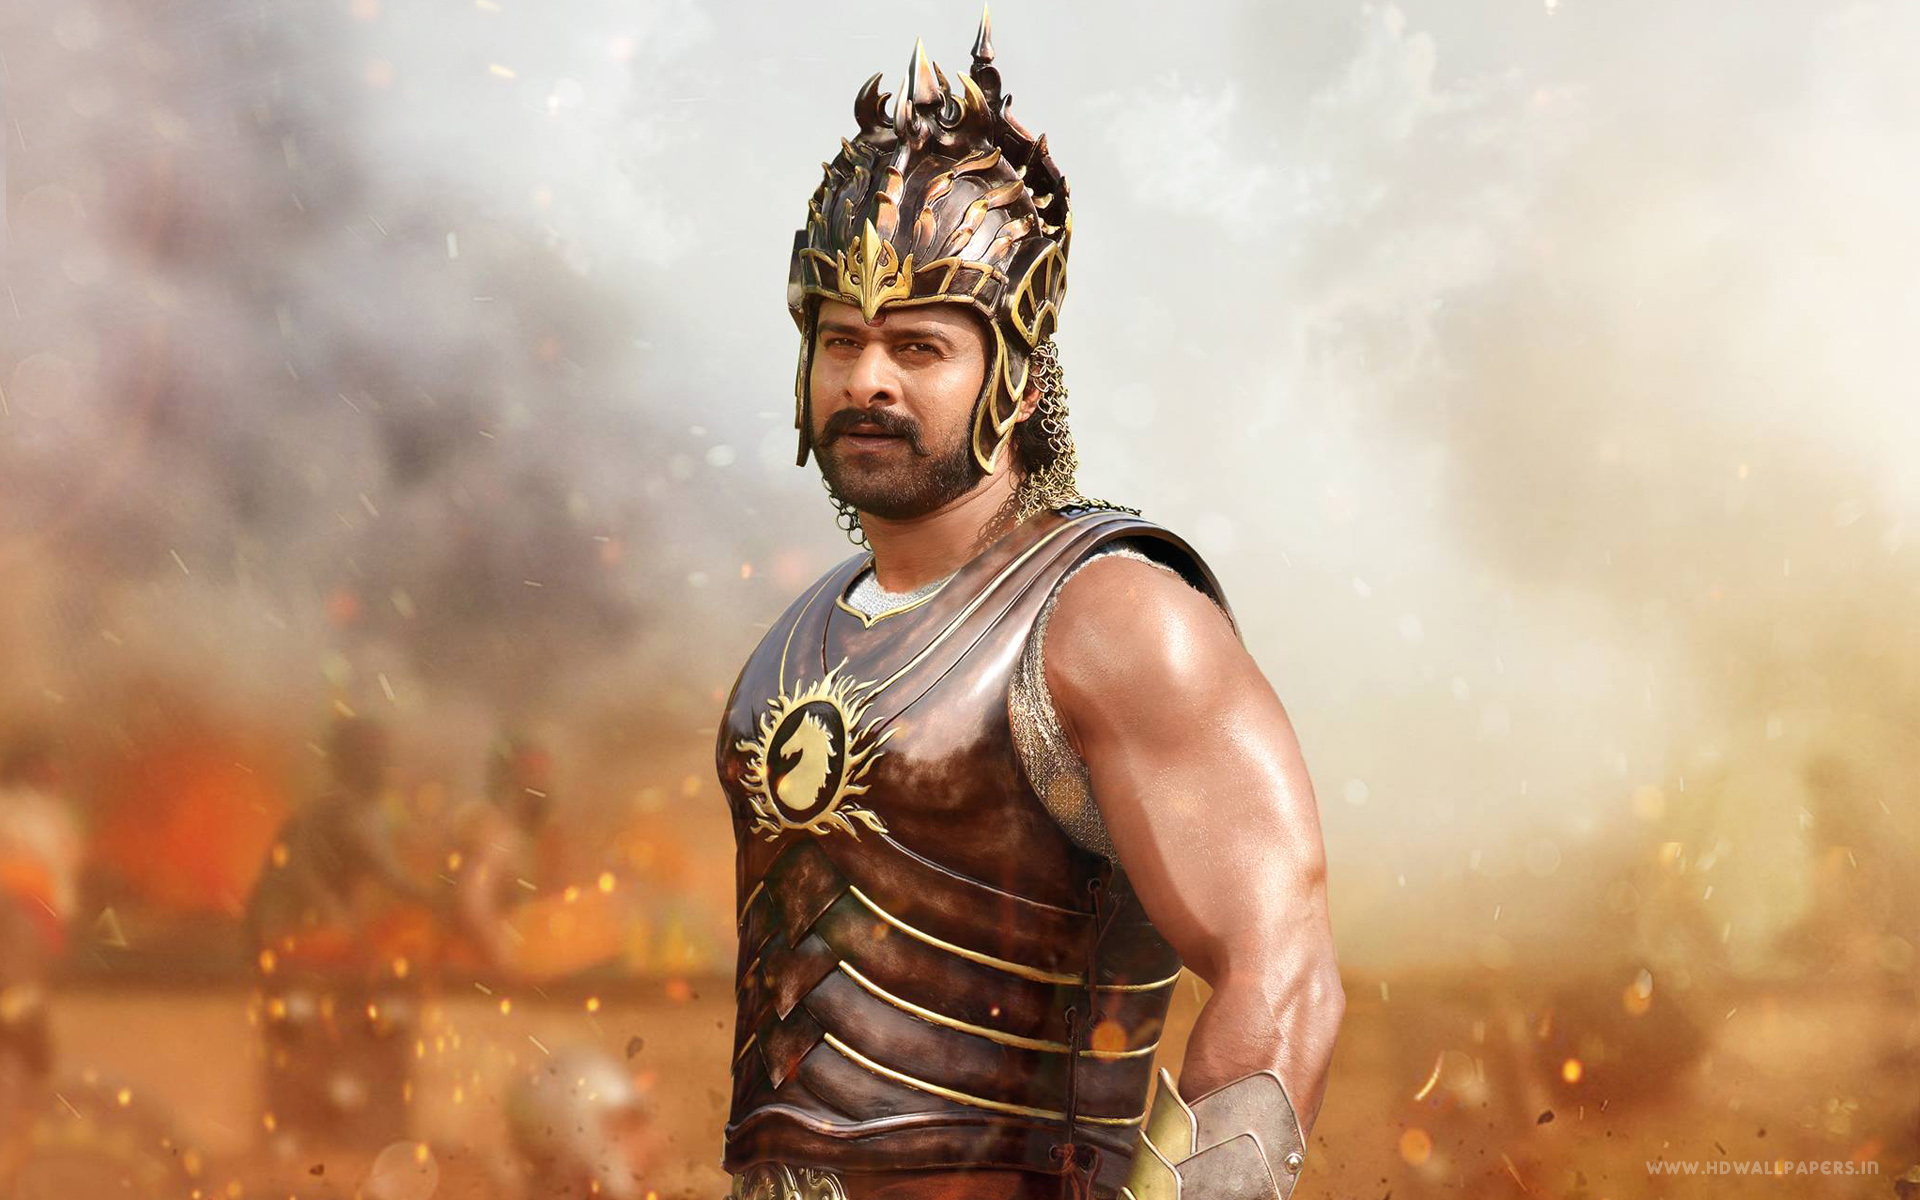 Prabhas Wallpapers Free Download Mobile: Prabhas Wallpapers, Photos And Desktop Backgrounds Up To